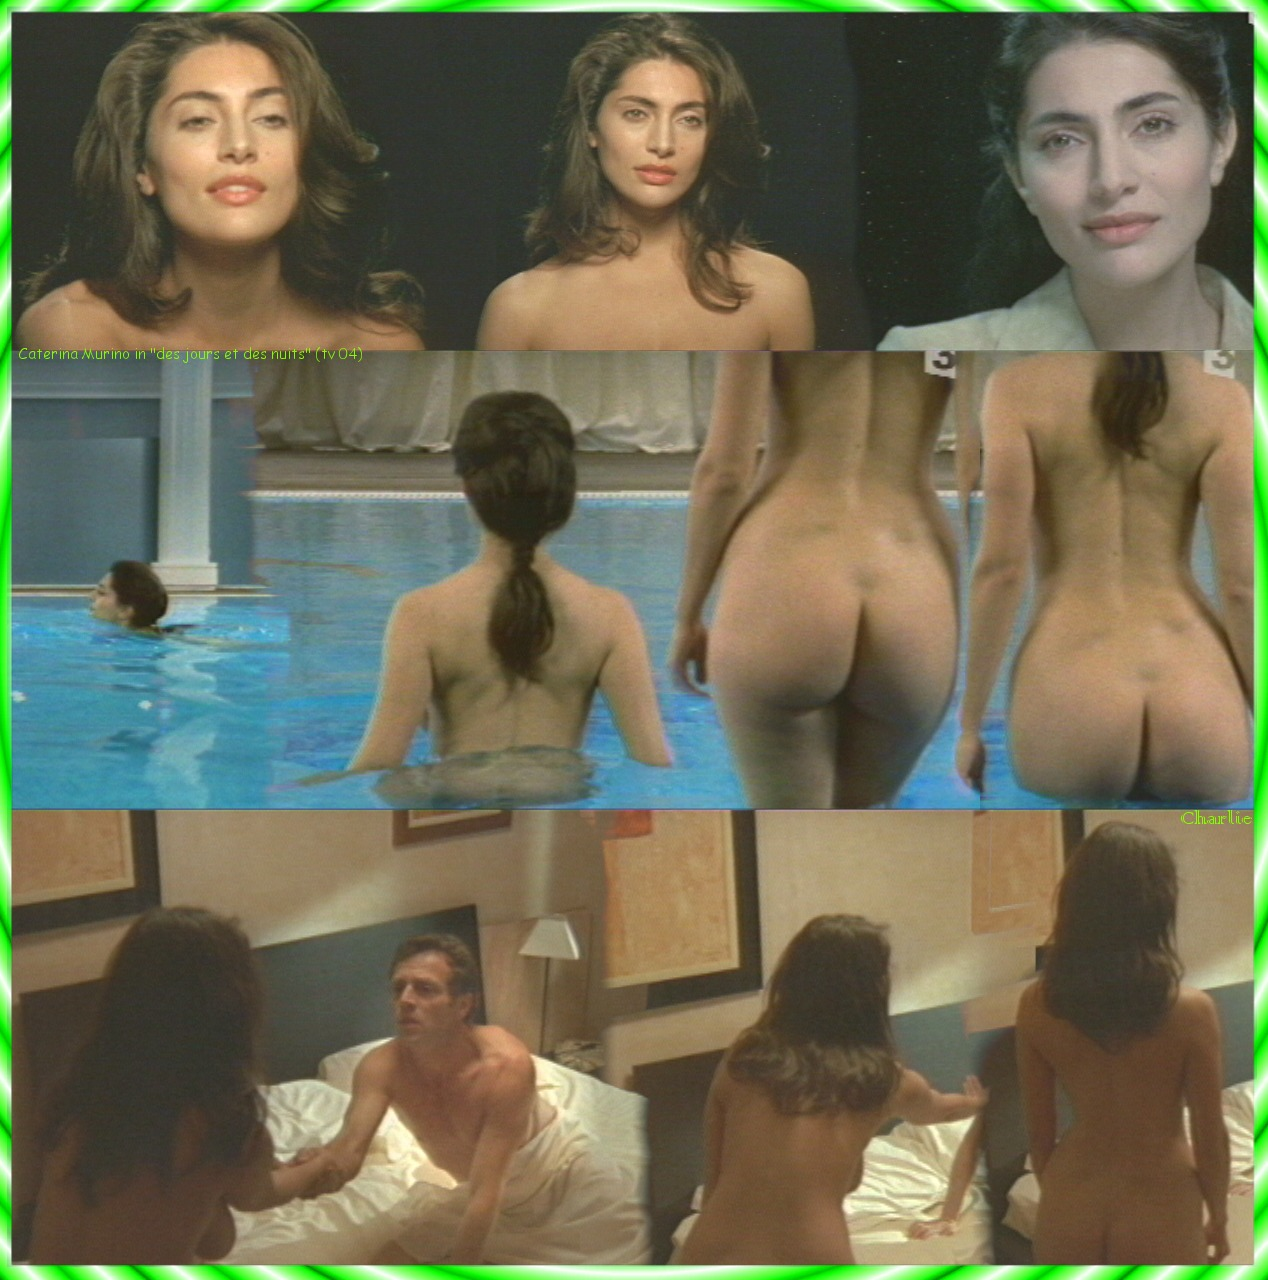 Caterina murino naked